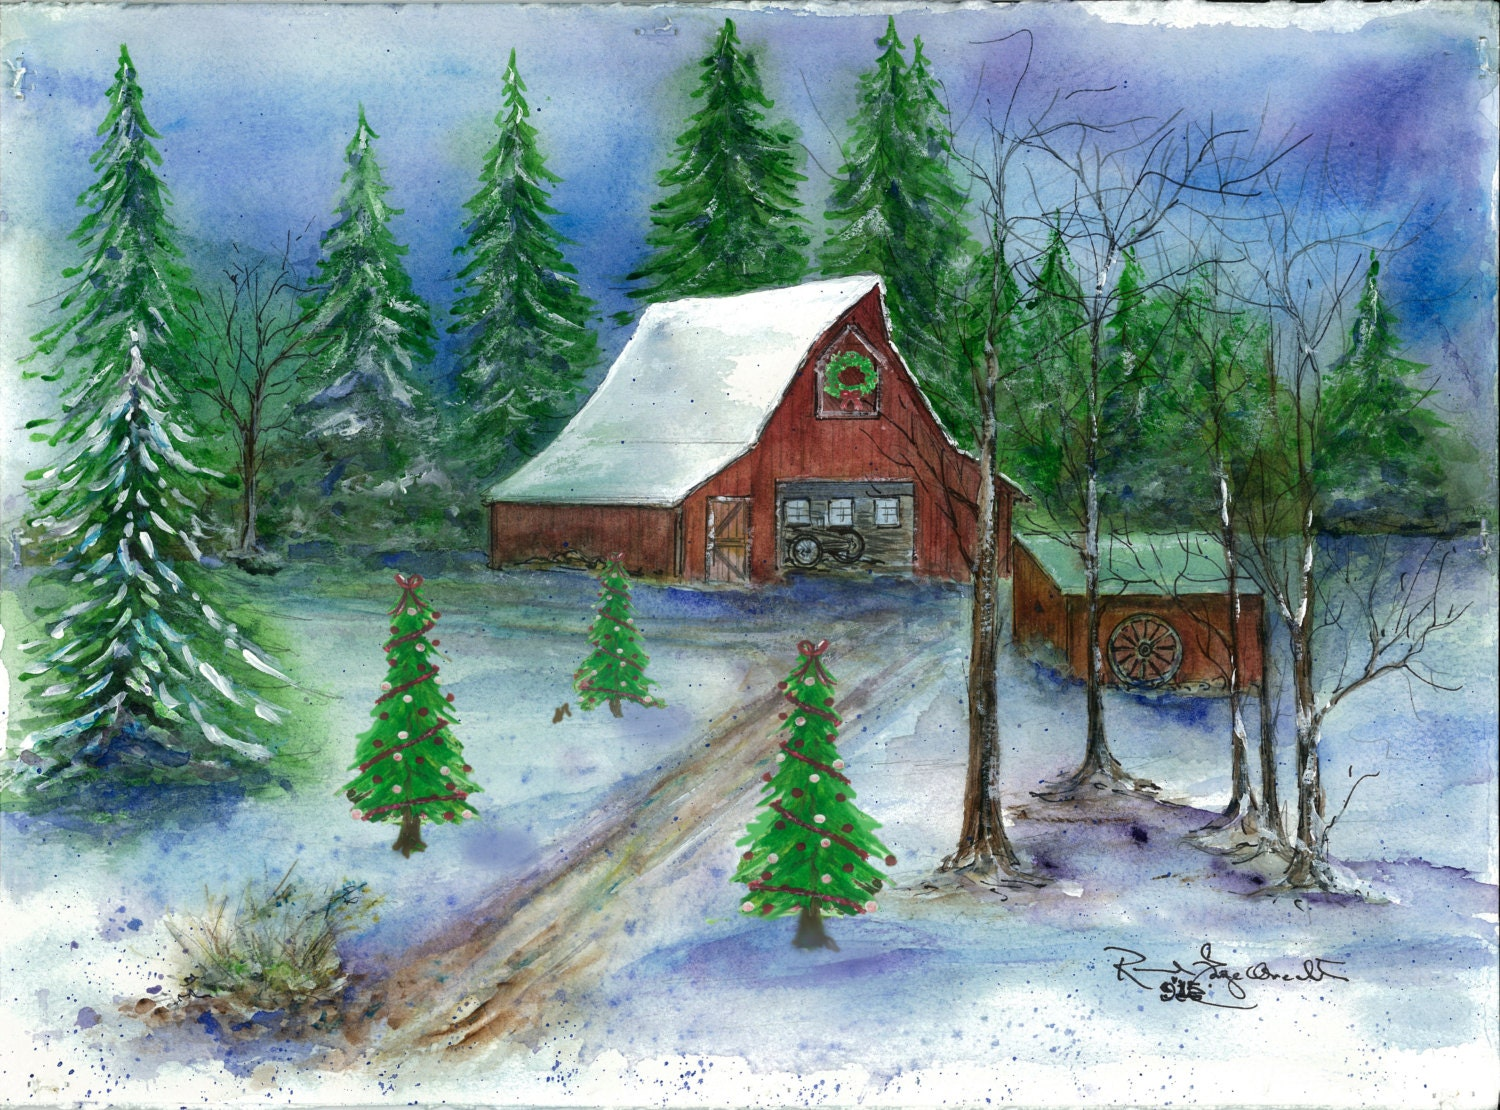 Winter on the Farm 1. Set of 8 Old Barn Christmas Cards | Etsy